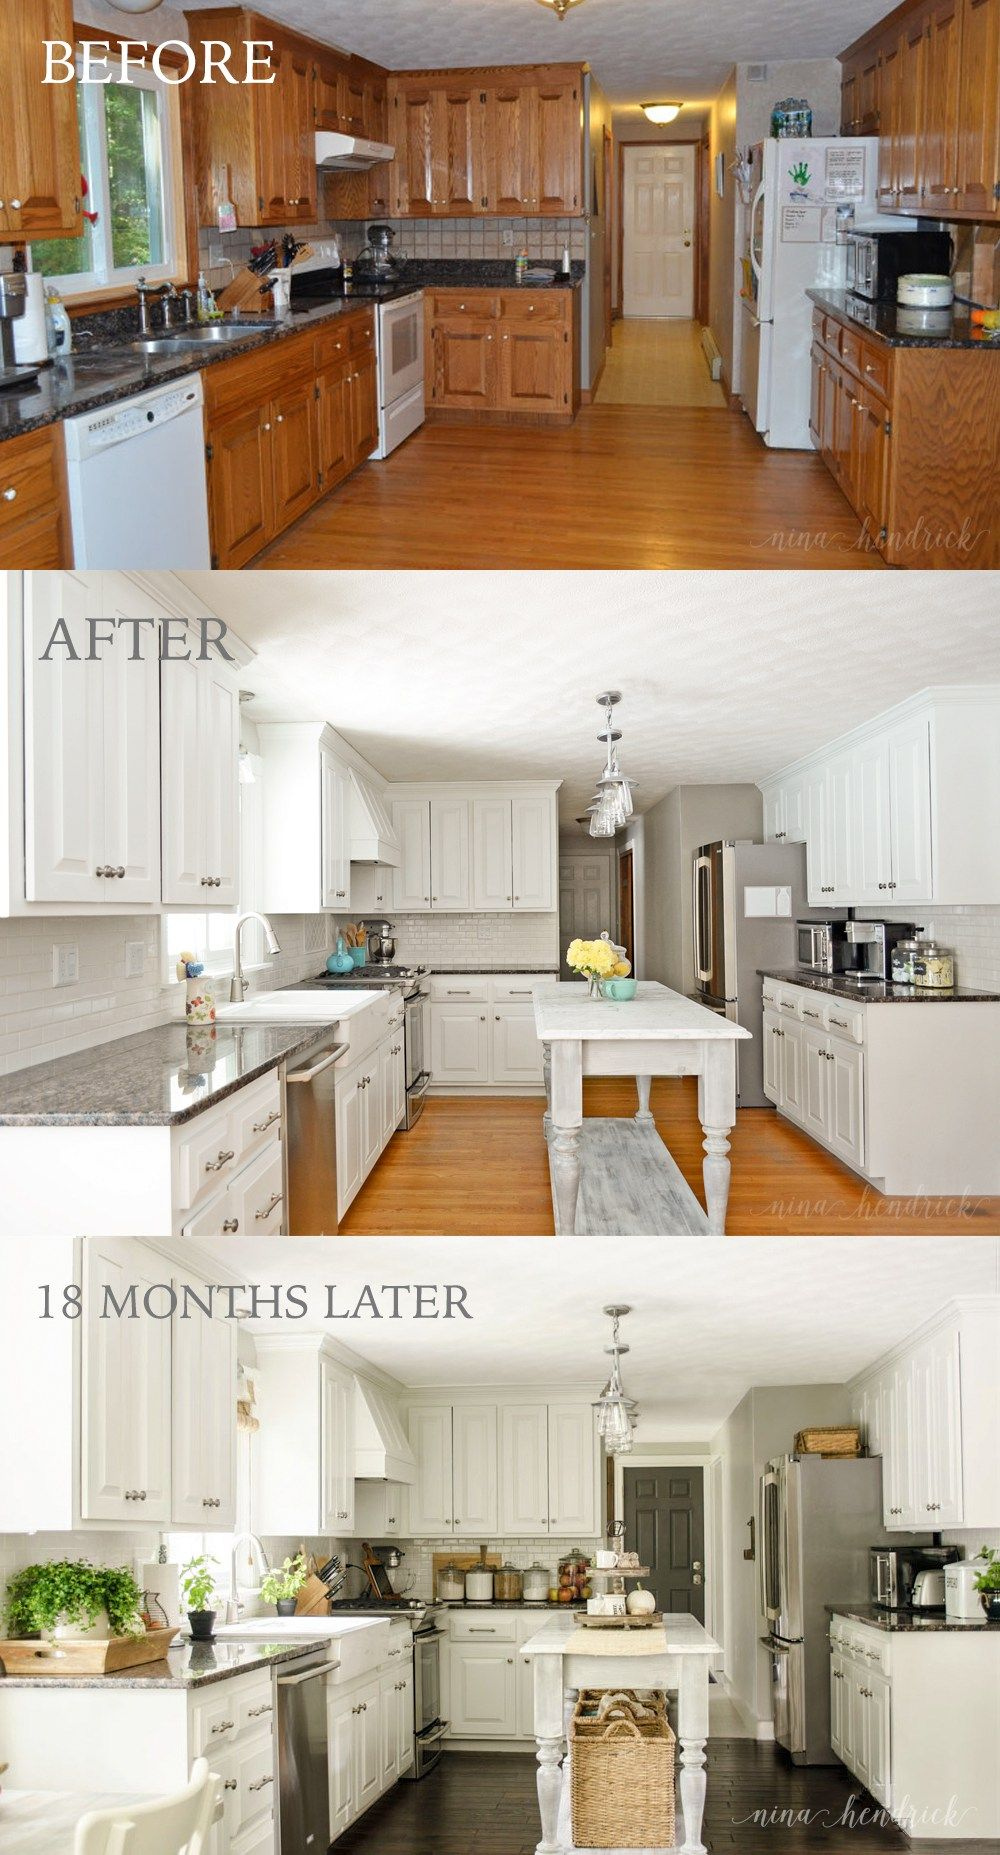 How To Paint Oak Cabinets And Hide The Grain Kitchen Design - What's the best paint to use for kitchen cabinets